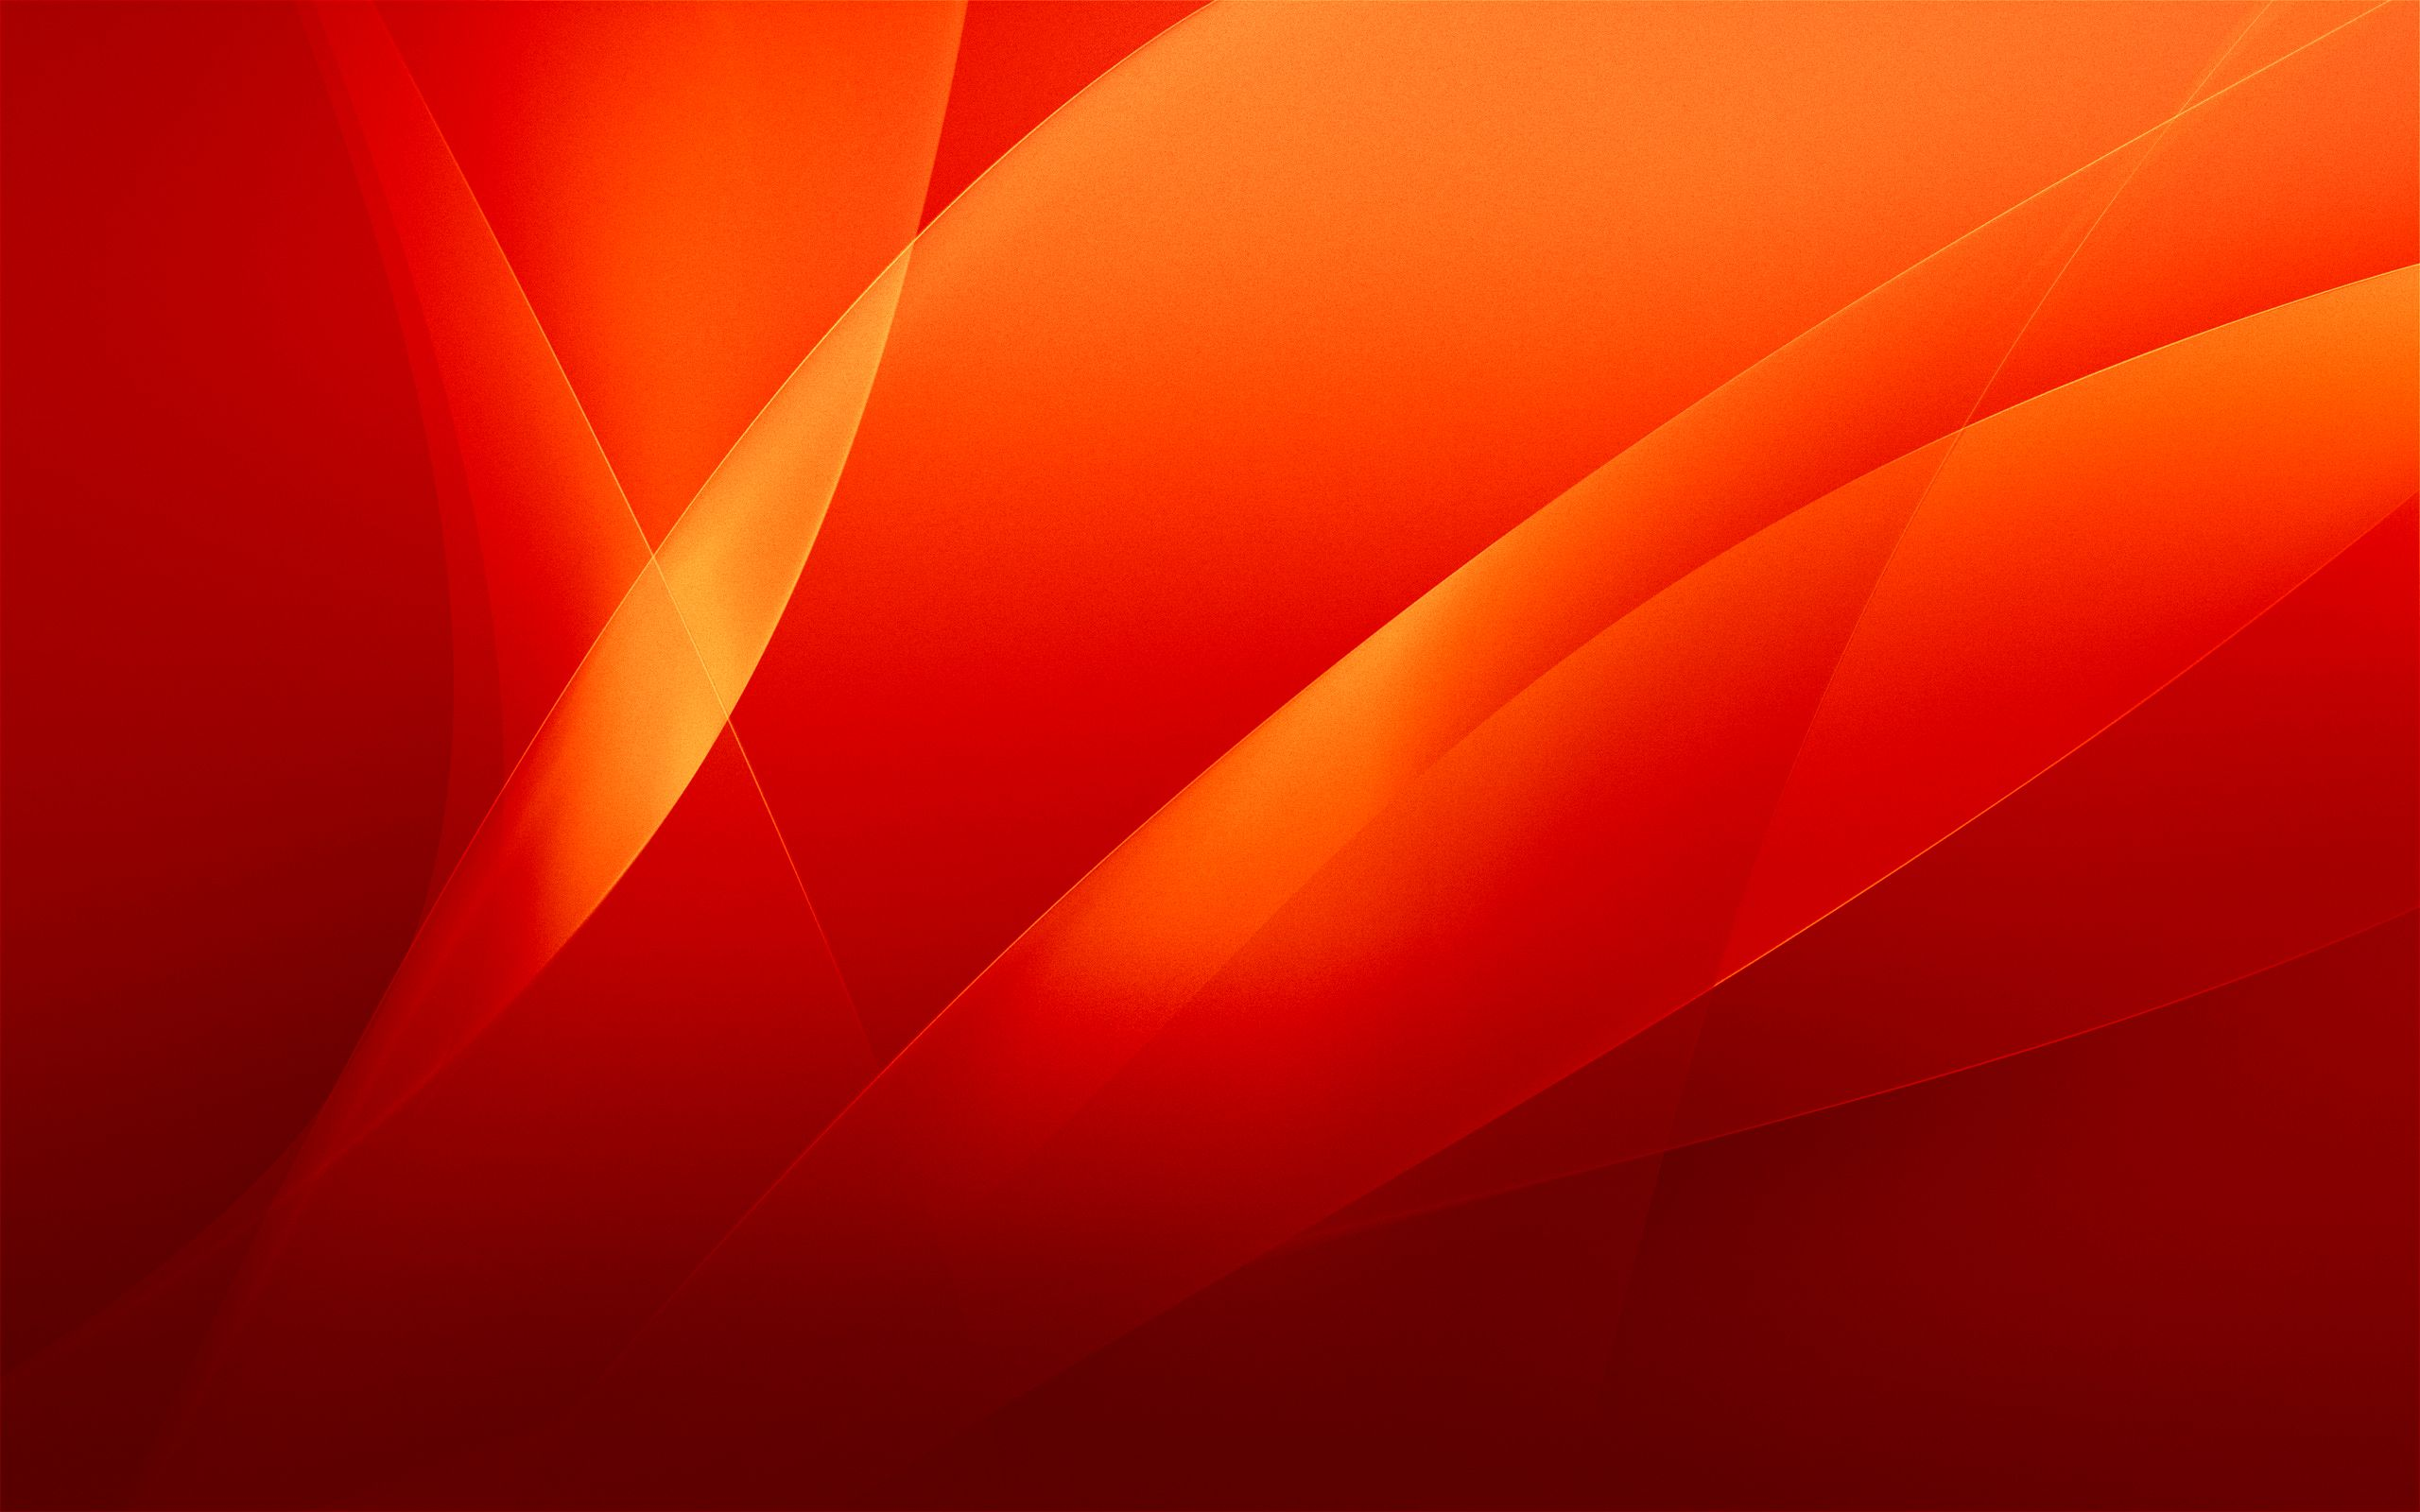 Red Background High Resolution Wallpaper Red Background